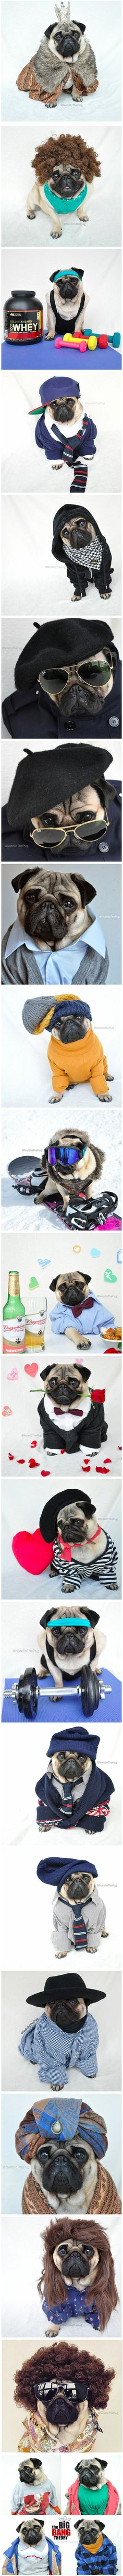 Nutello the Dog is the most fashionable pug on the internet, and these images prove it.